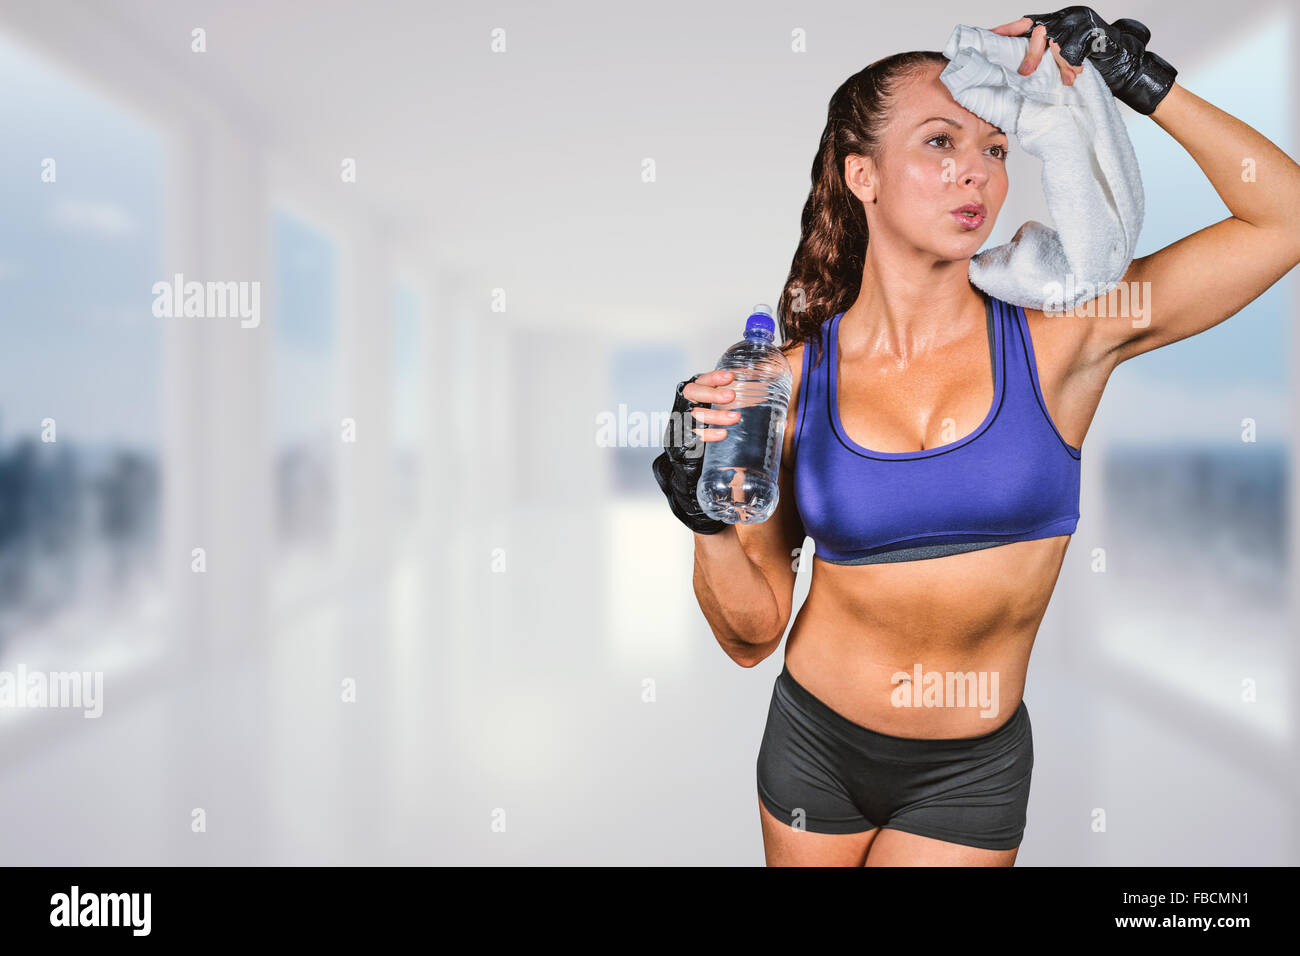 Composite image of exhausted woman wiping sweat while holding water bottle - Stock Image